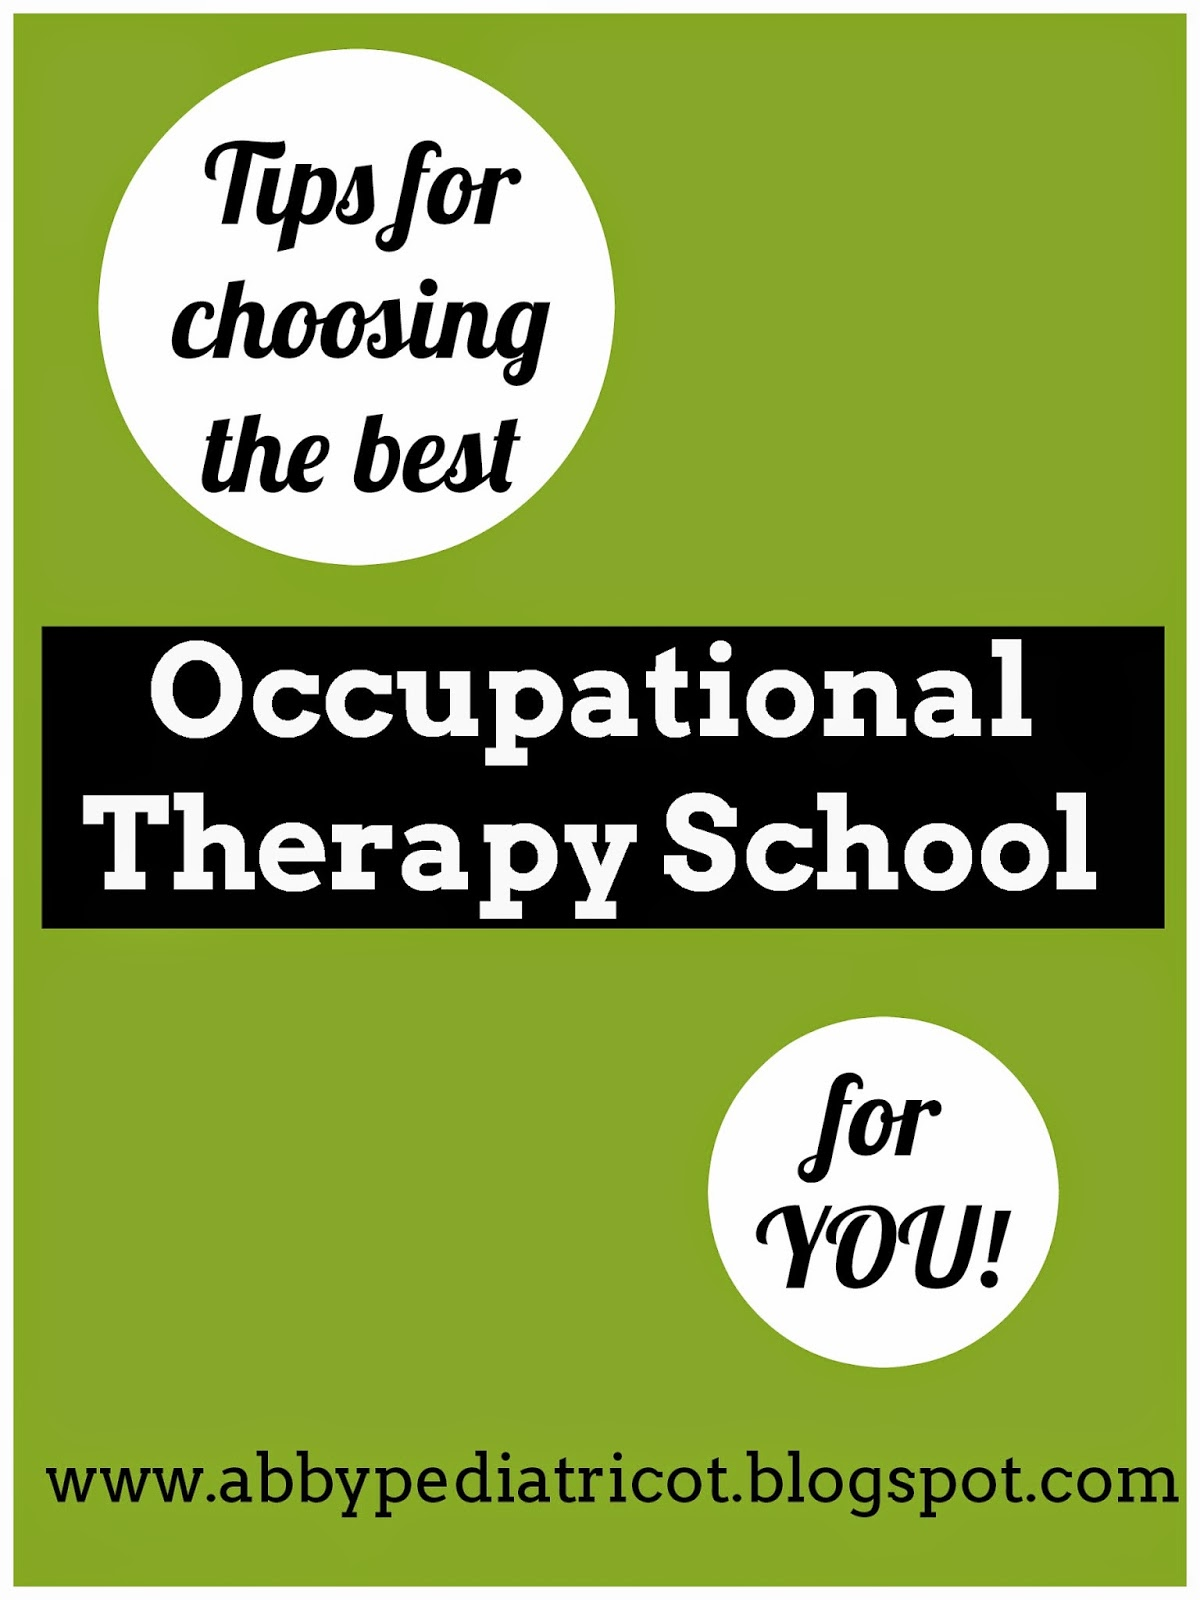 Occupational Therapy Assistant (OTA) paper writing service reviews